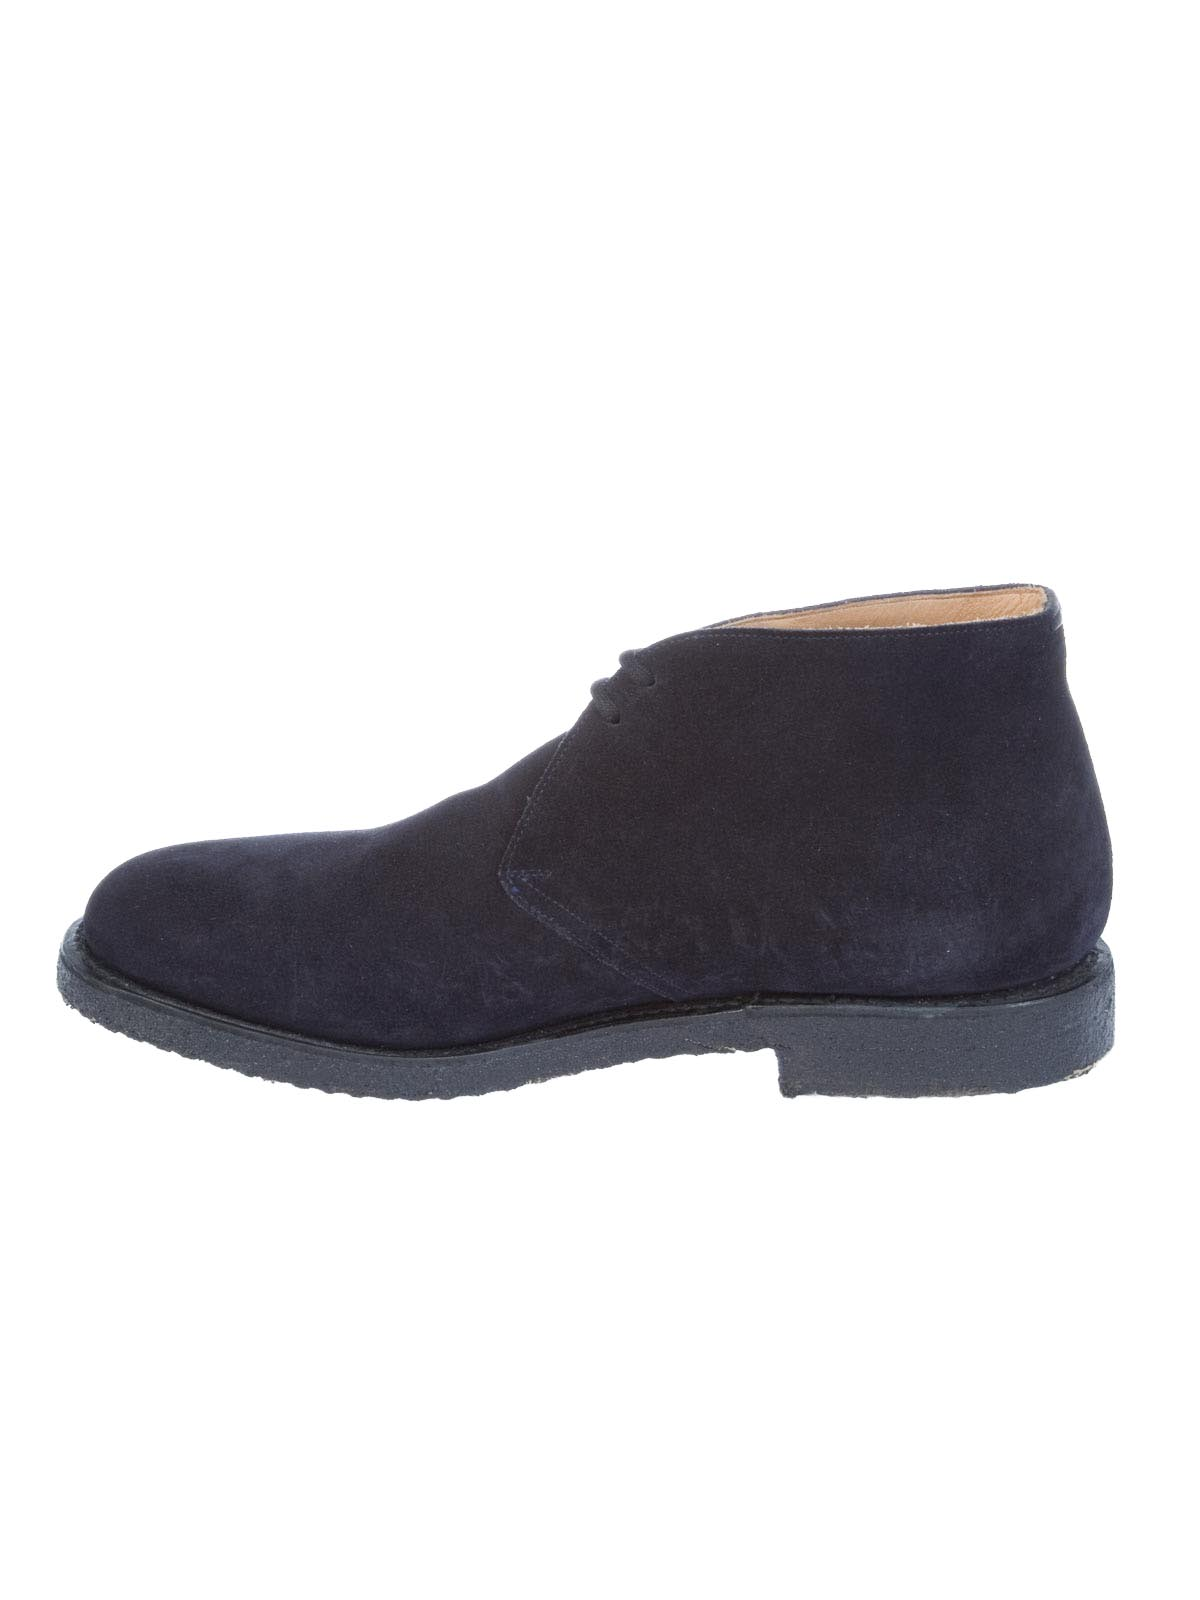 Picture of CHURCH'S | Ryder Castoro Shoe